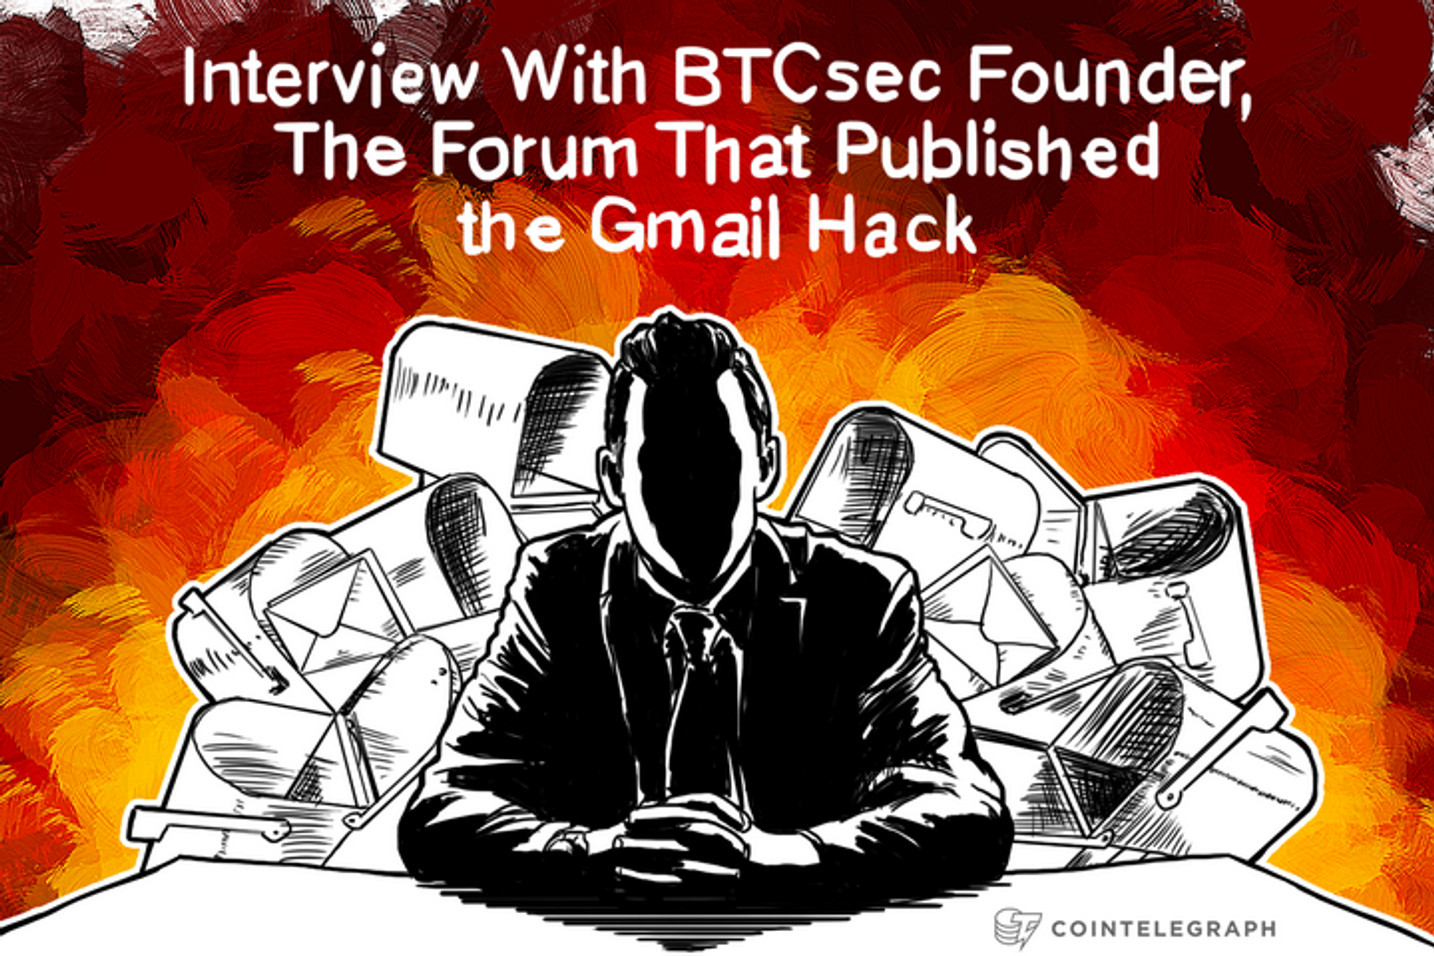 Interview With BTCsec Founder, The Forum That Published the Gmail Hack